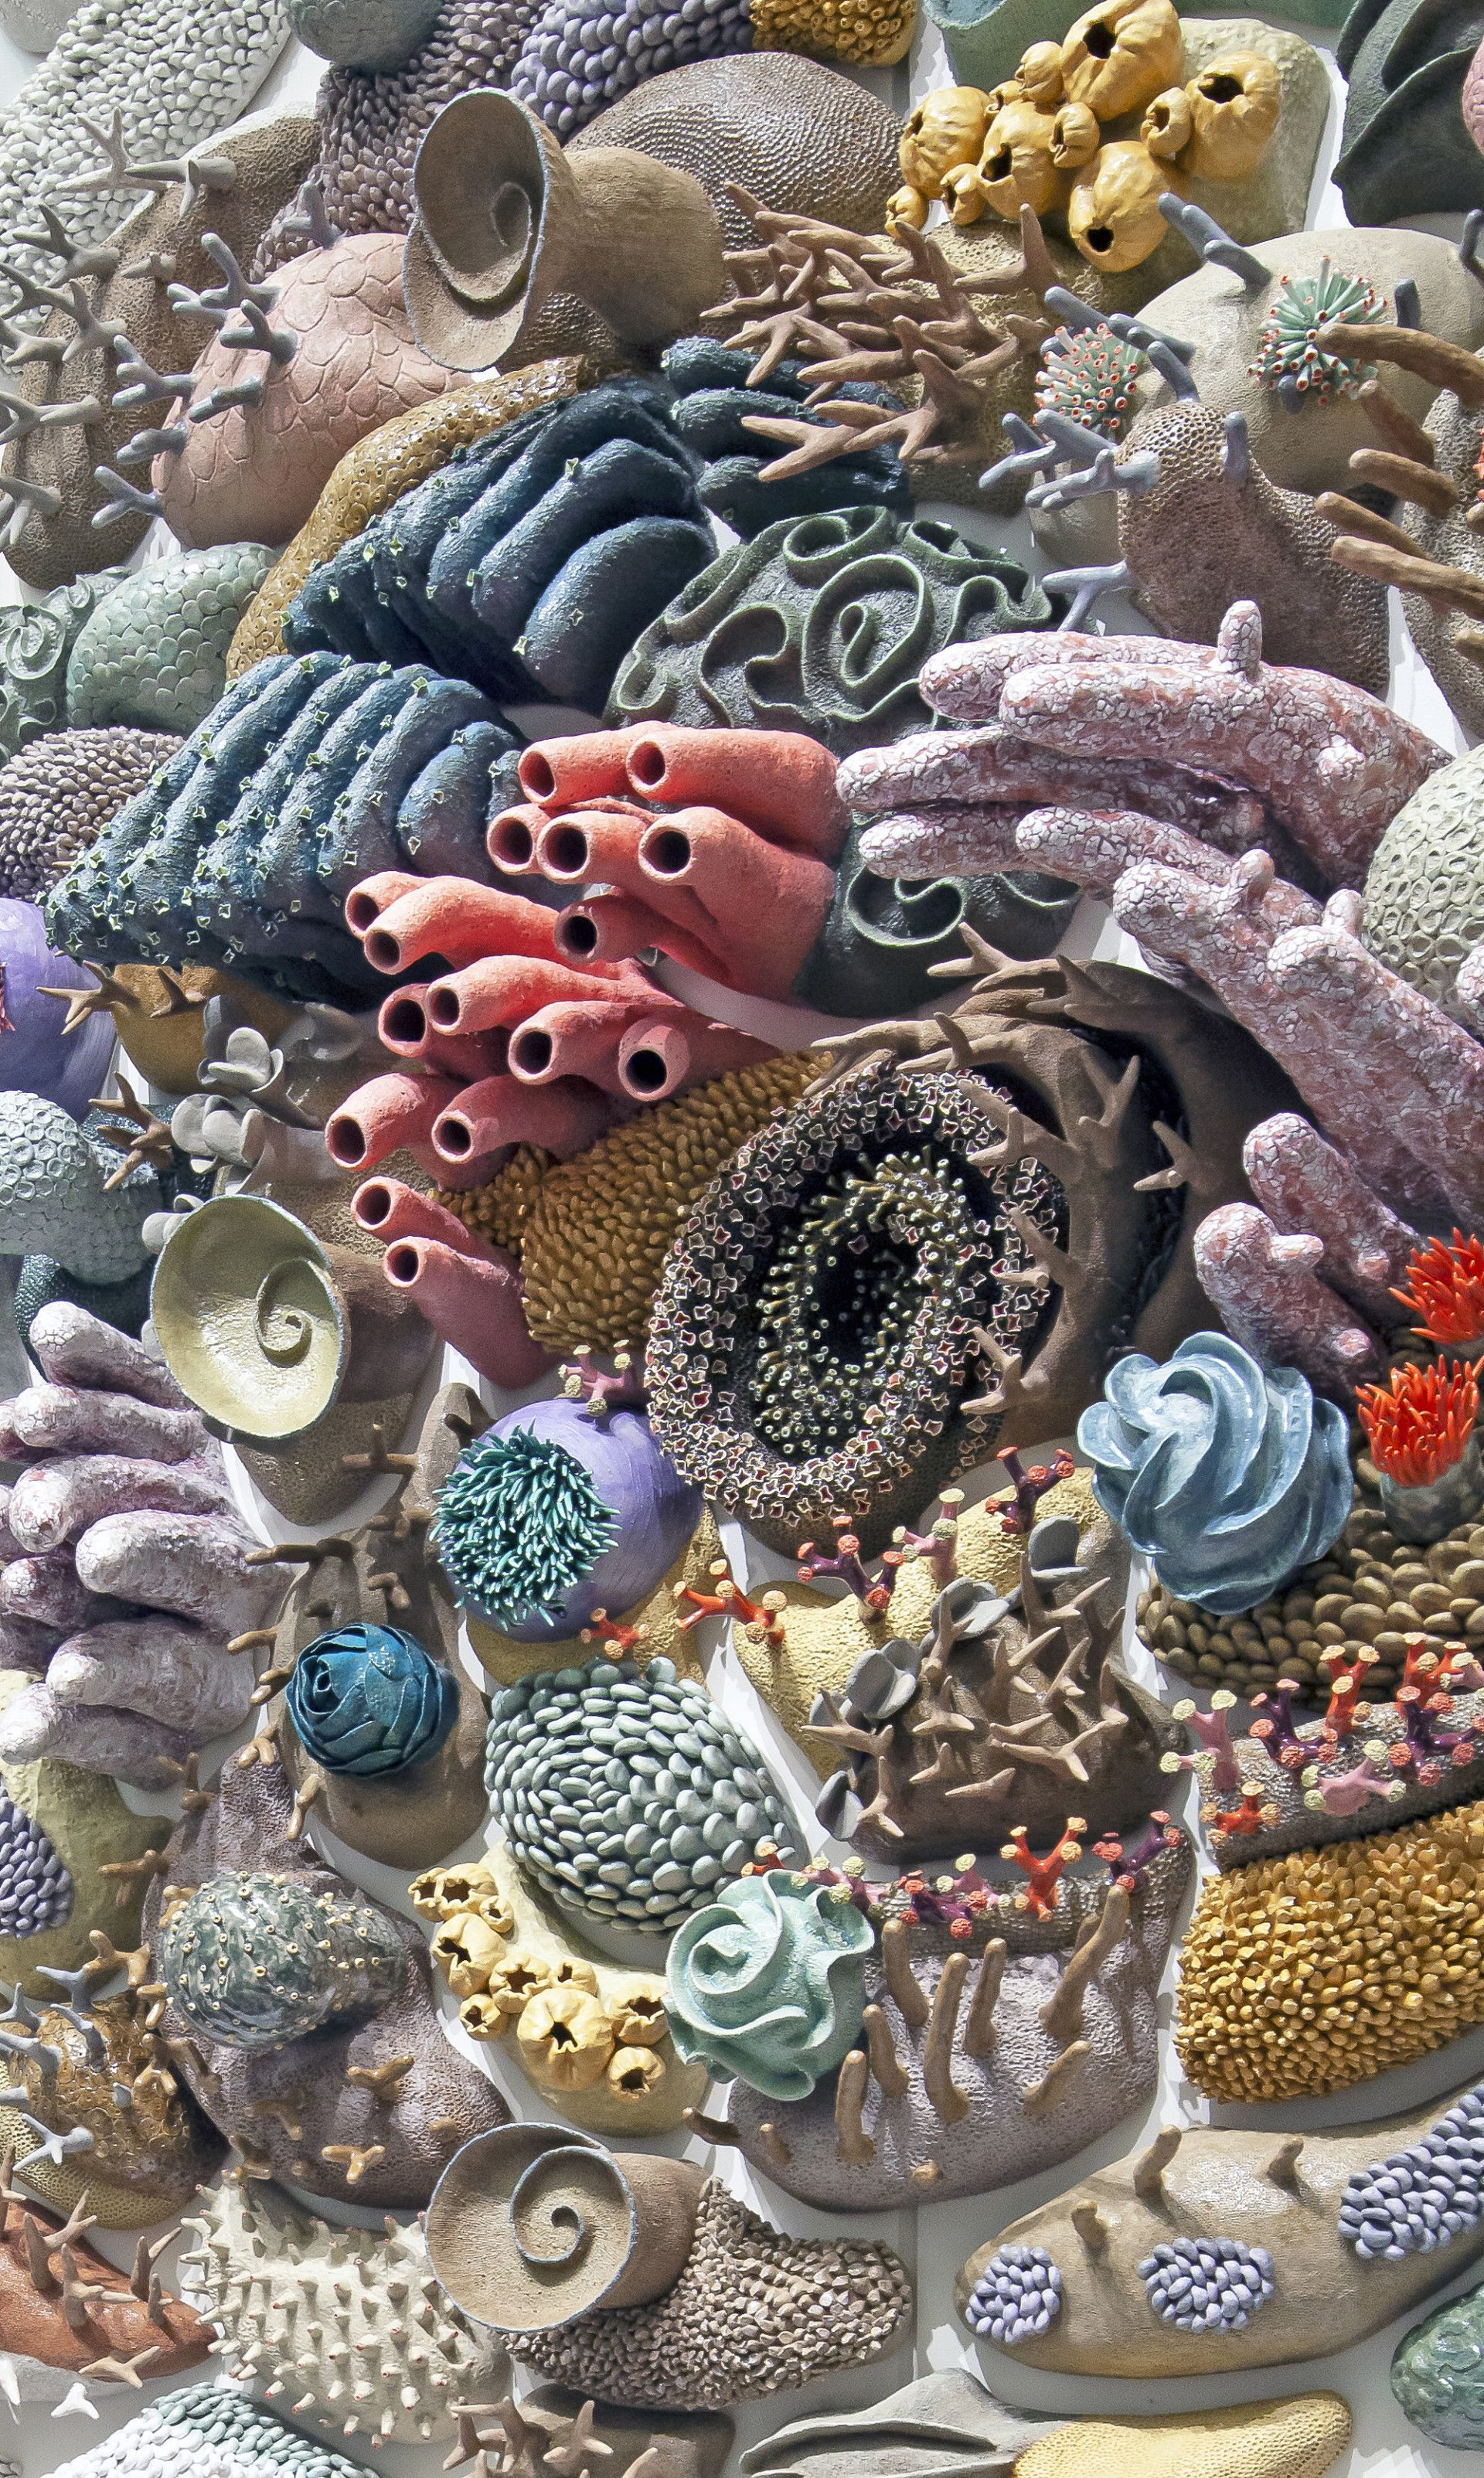 A Whirling Porcelain Coral Reef Draws Attention To The